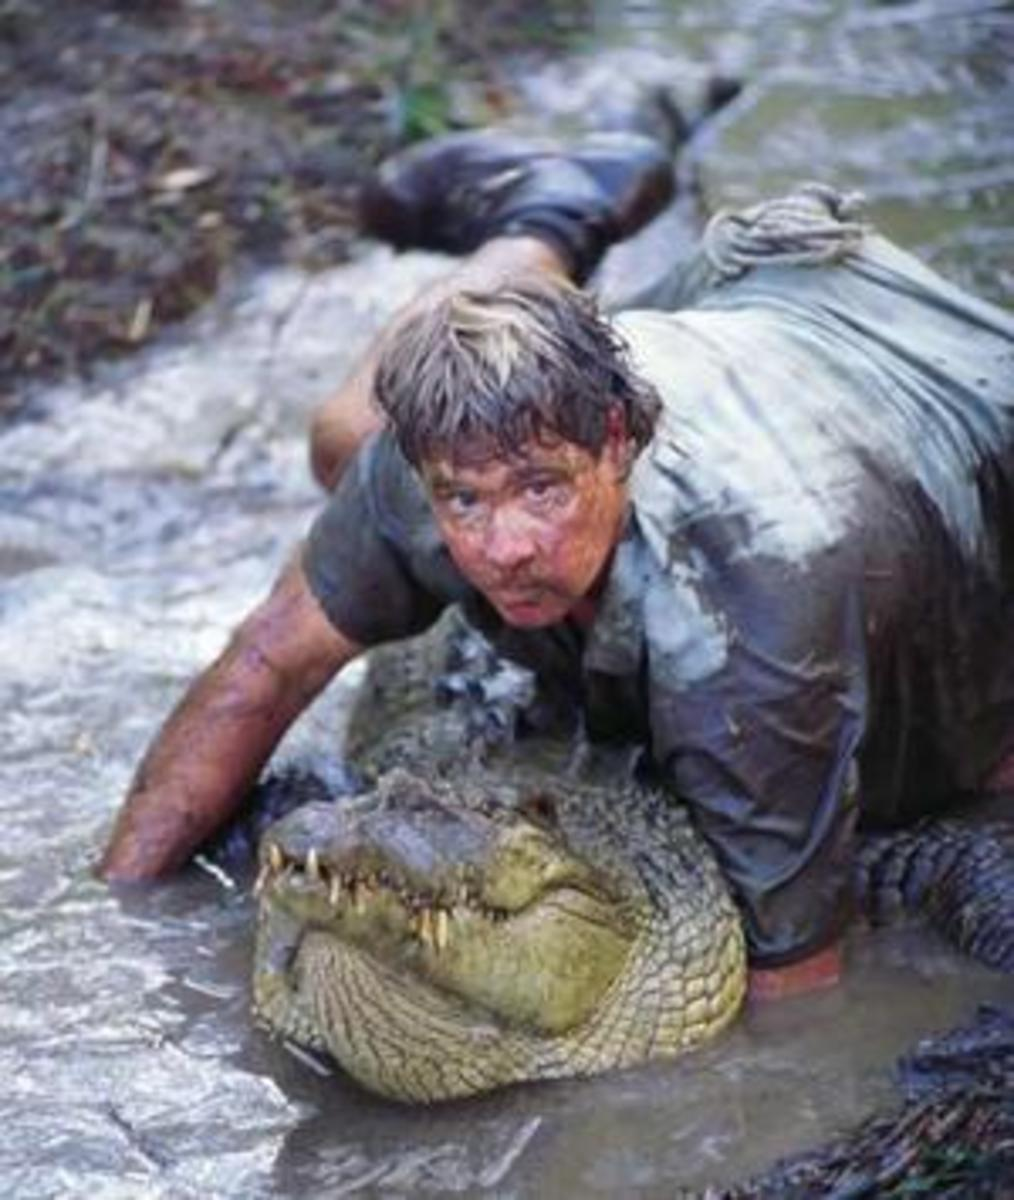 Steve Irwin Crocodile Hunter (read Lover)